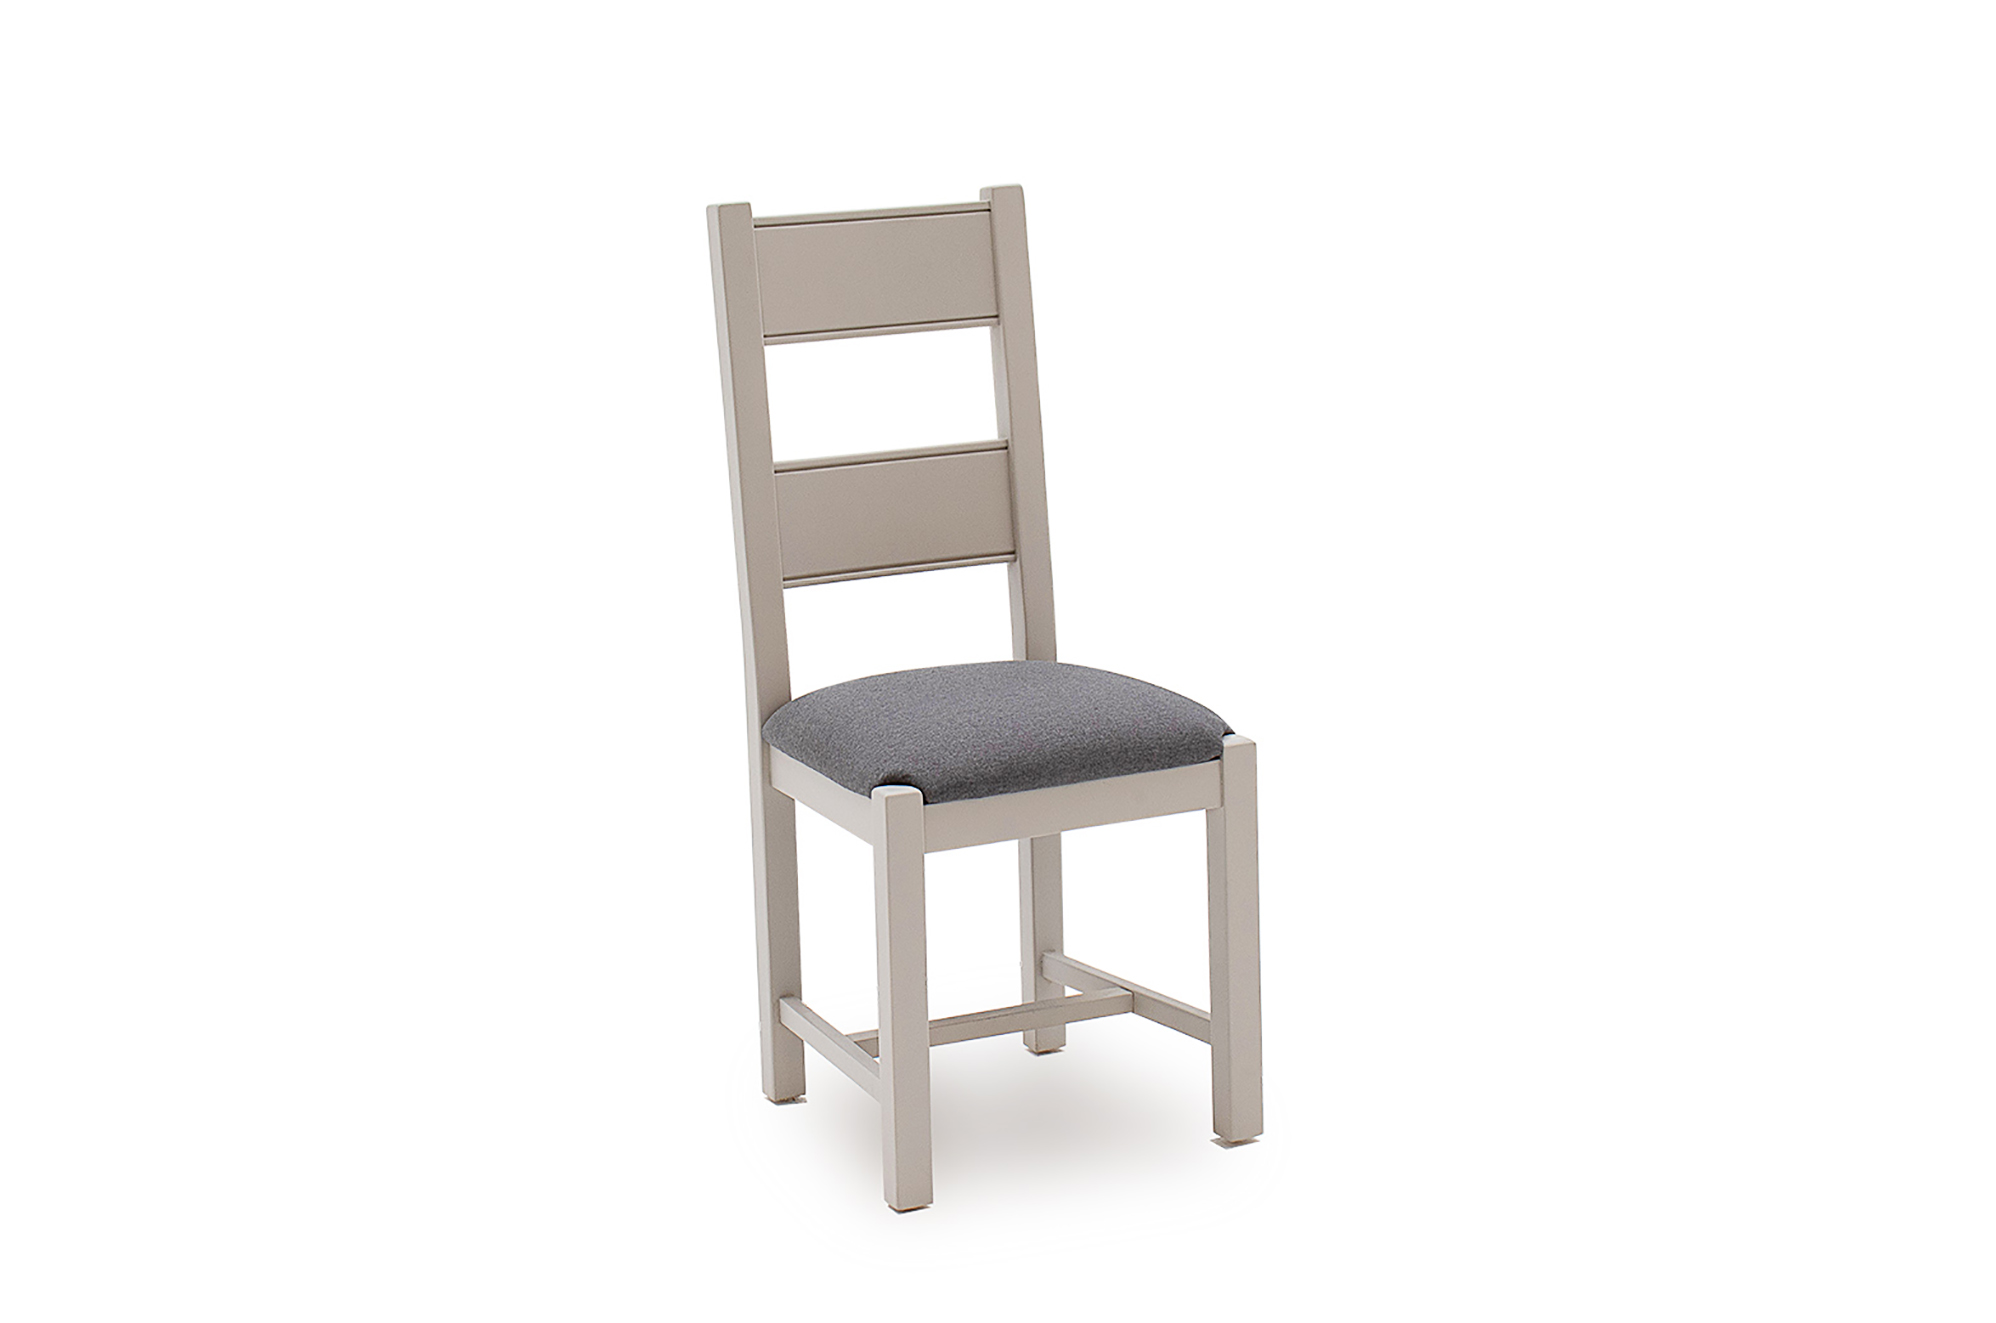 Amberly Dining Chair Grey Angle